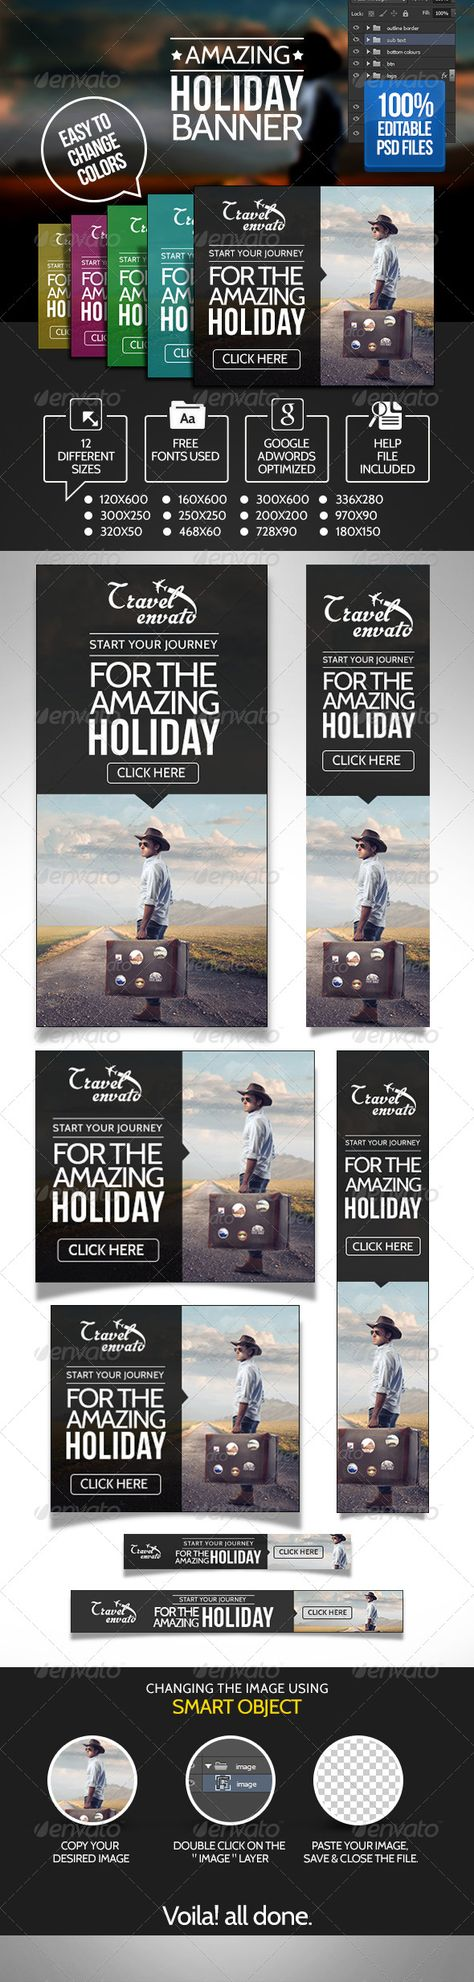 4/'x12/' Custom Banners Personalized Vinyl Photo Banner Printing wth